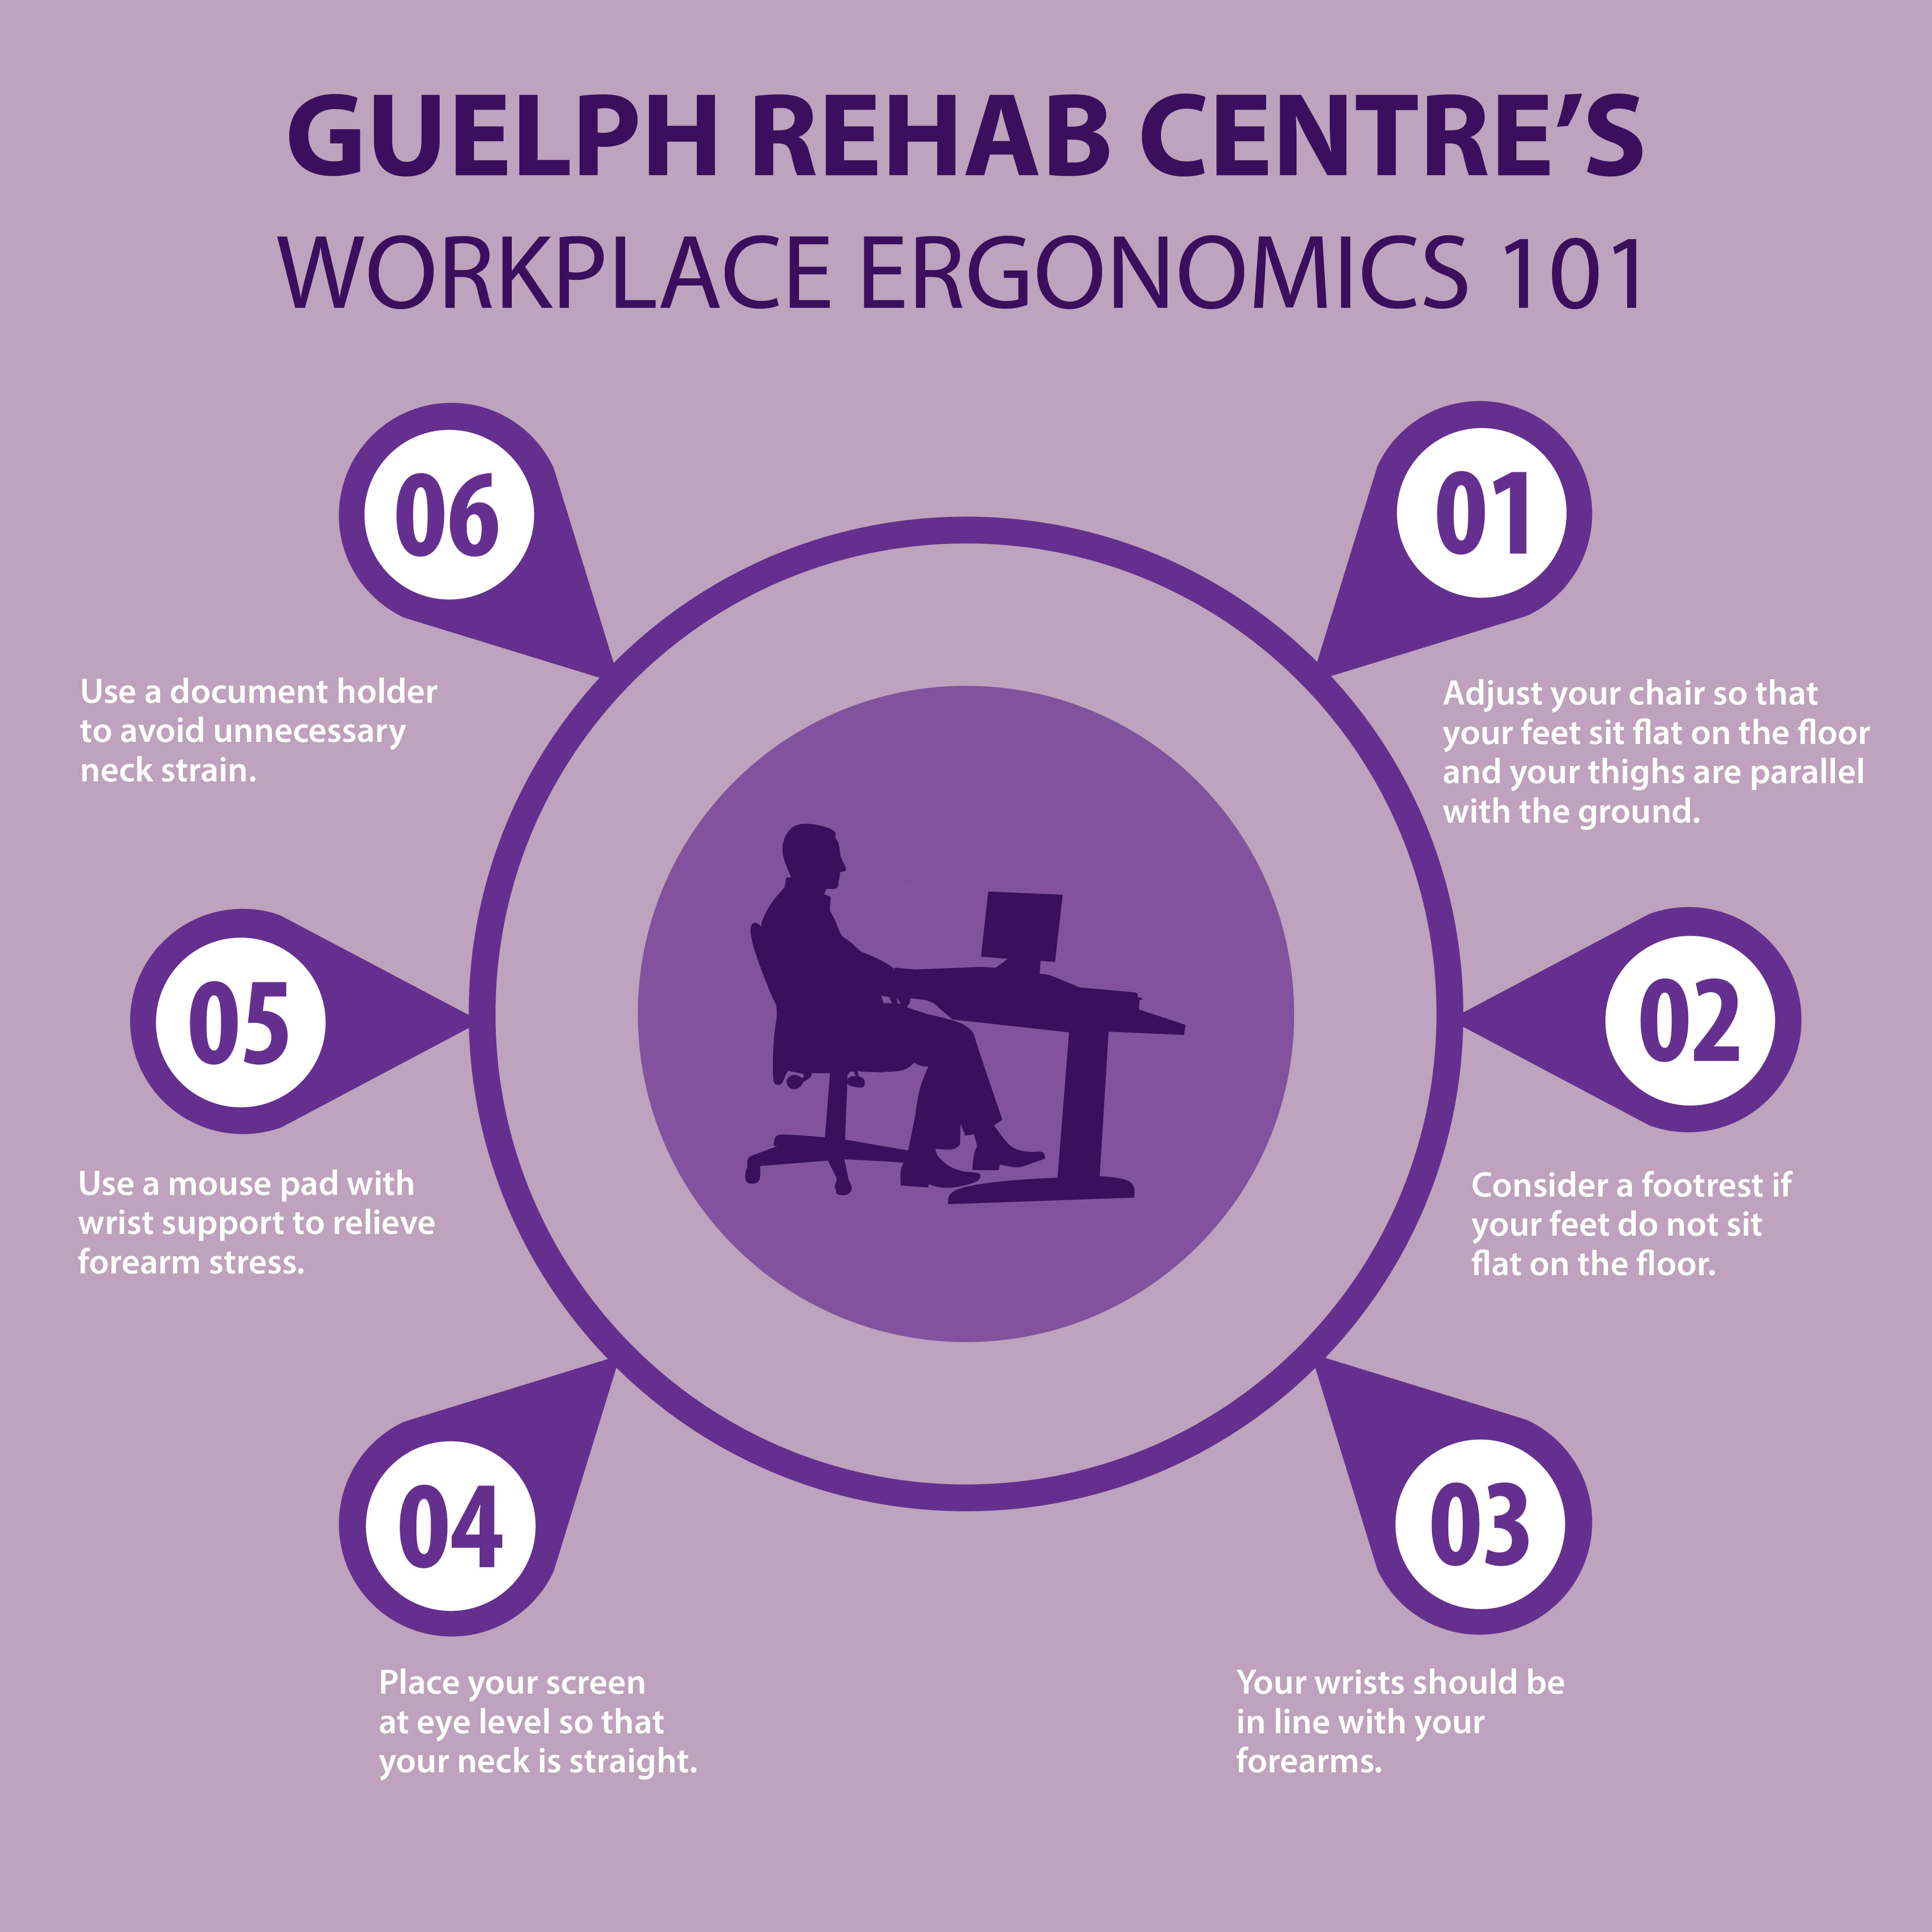 Guelph Rehab Centre March 2019 Infographic